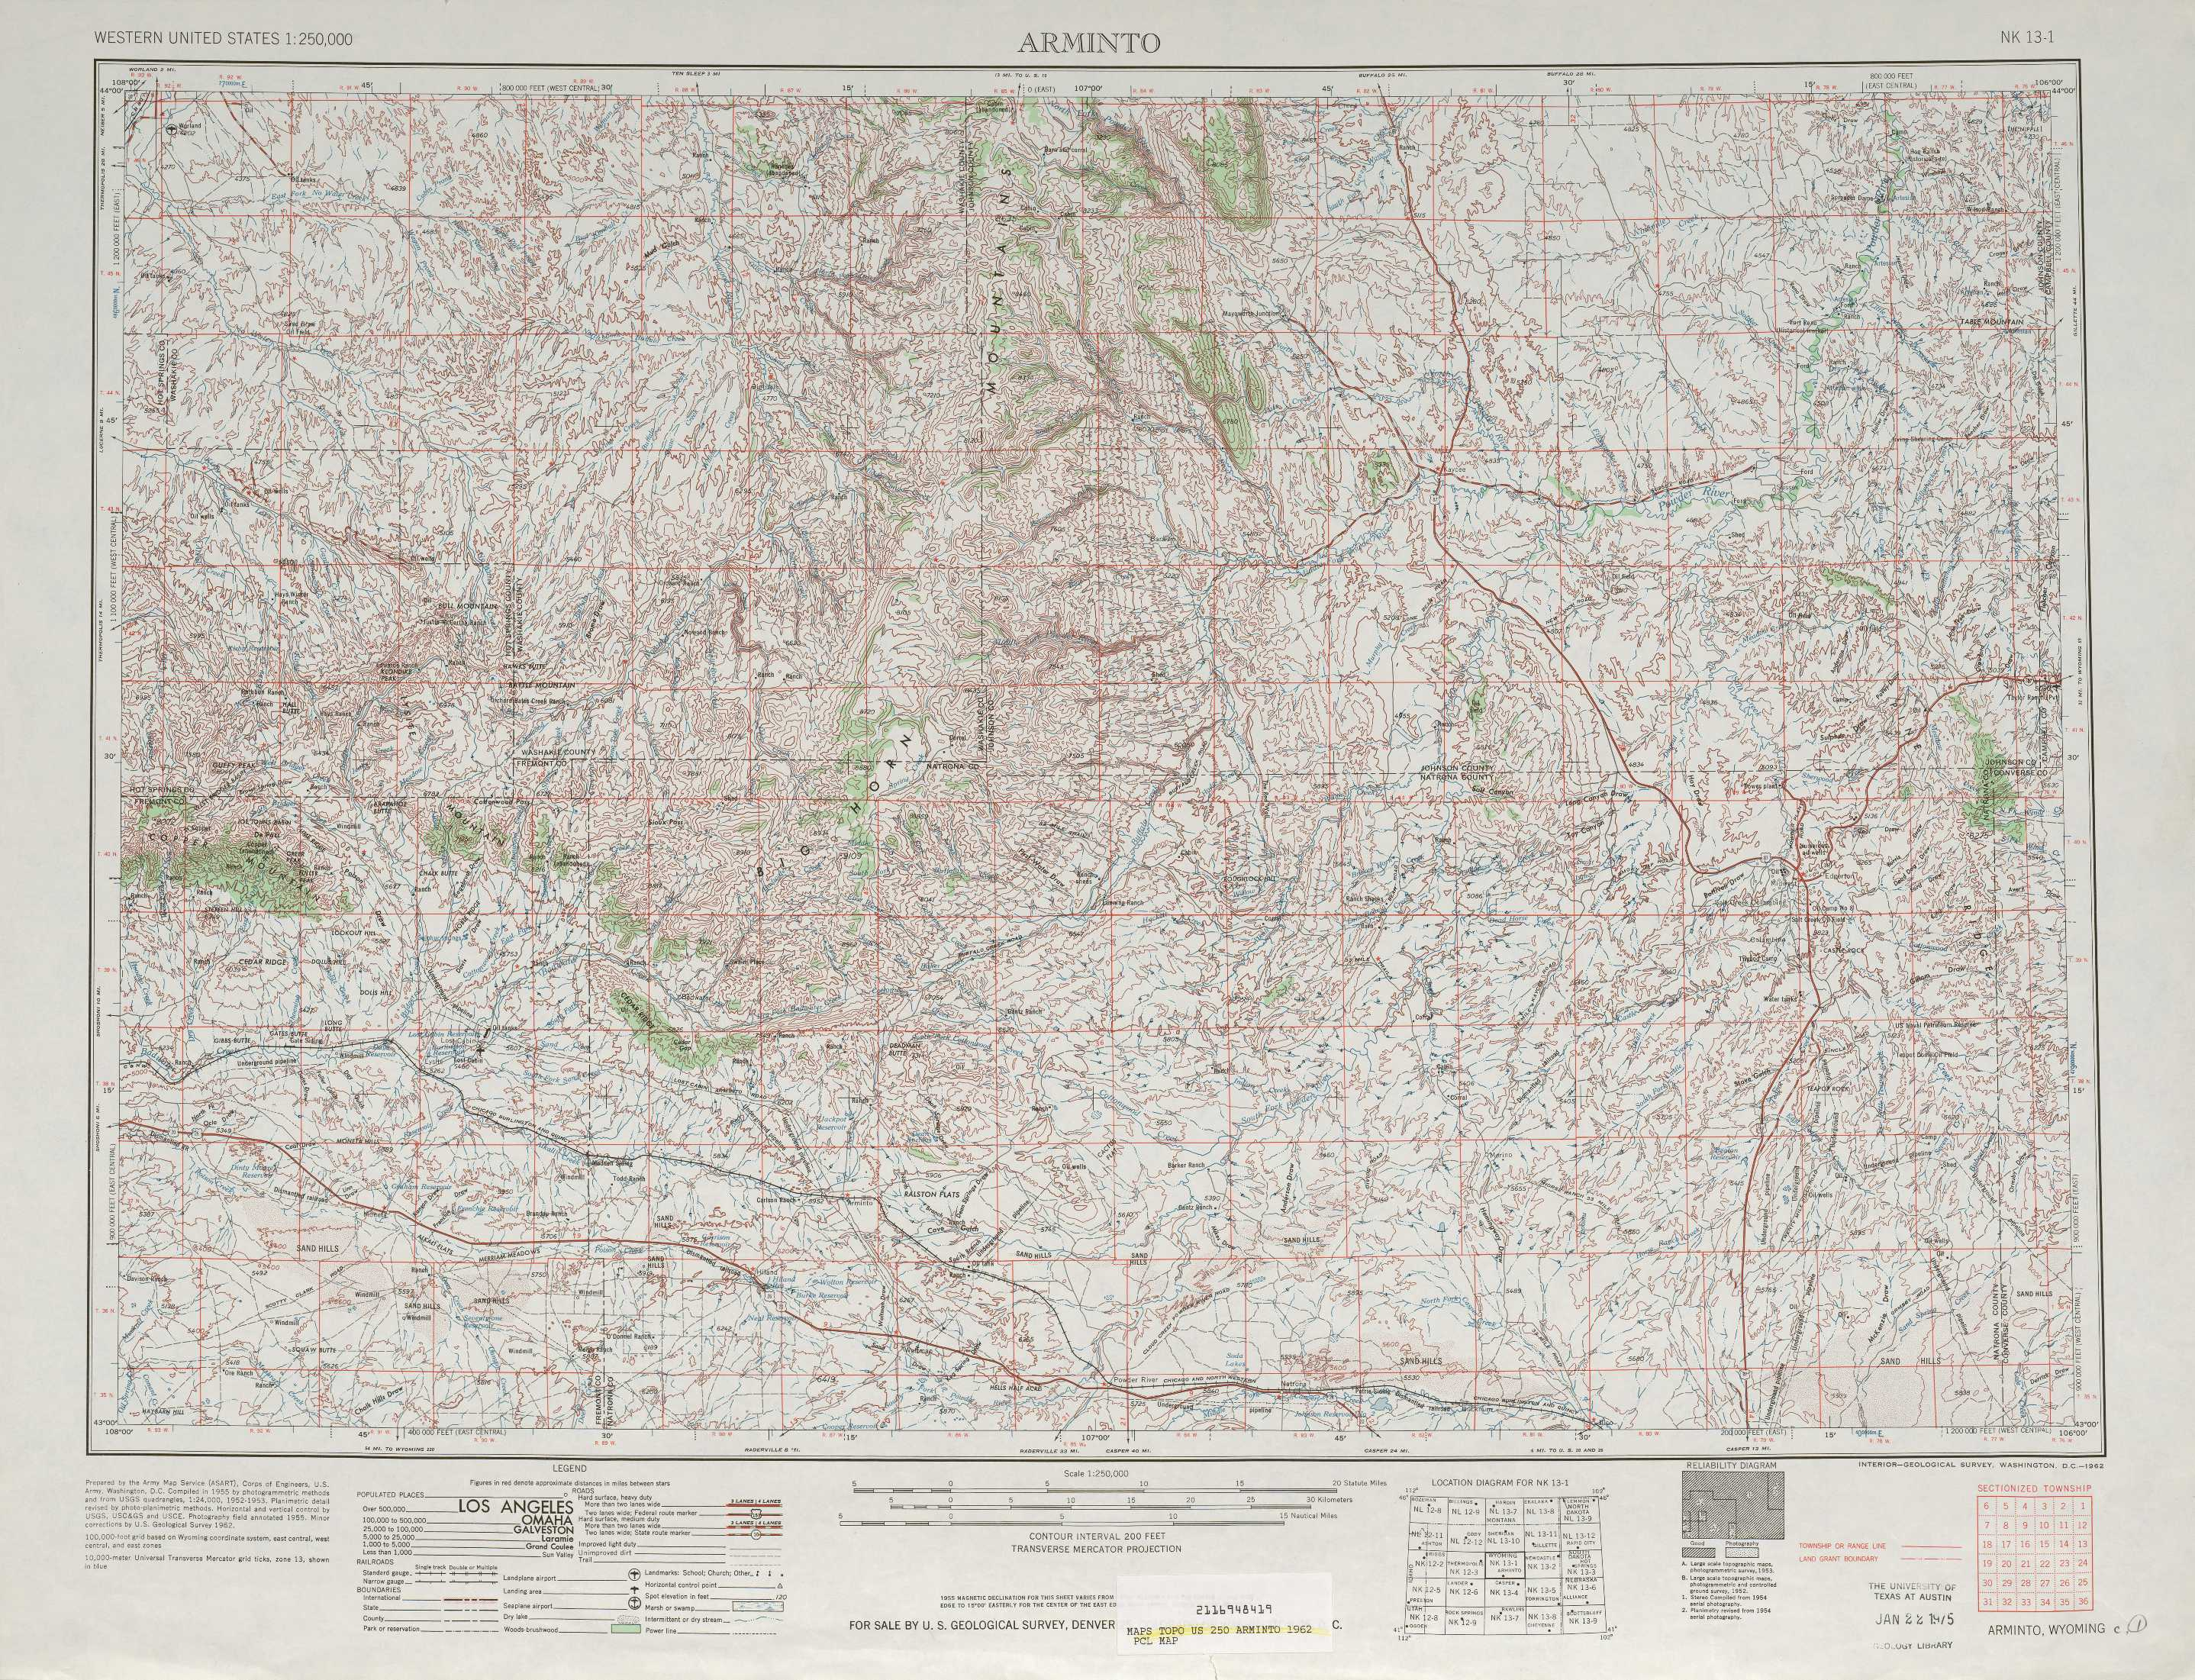 Arminto Topographic Maps WY  USGS Topo Quad 43106a1 At 1